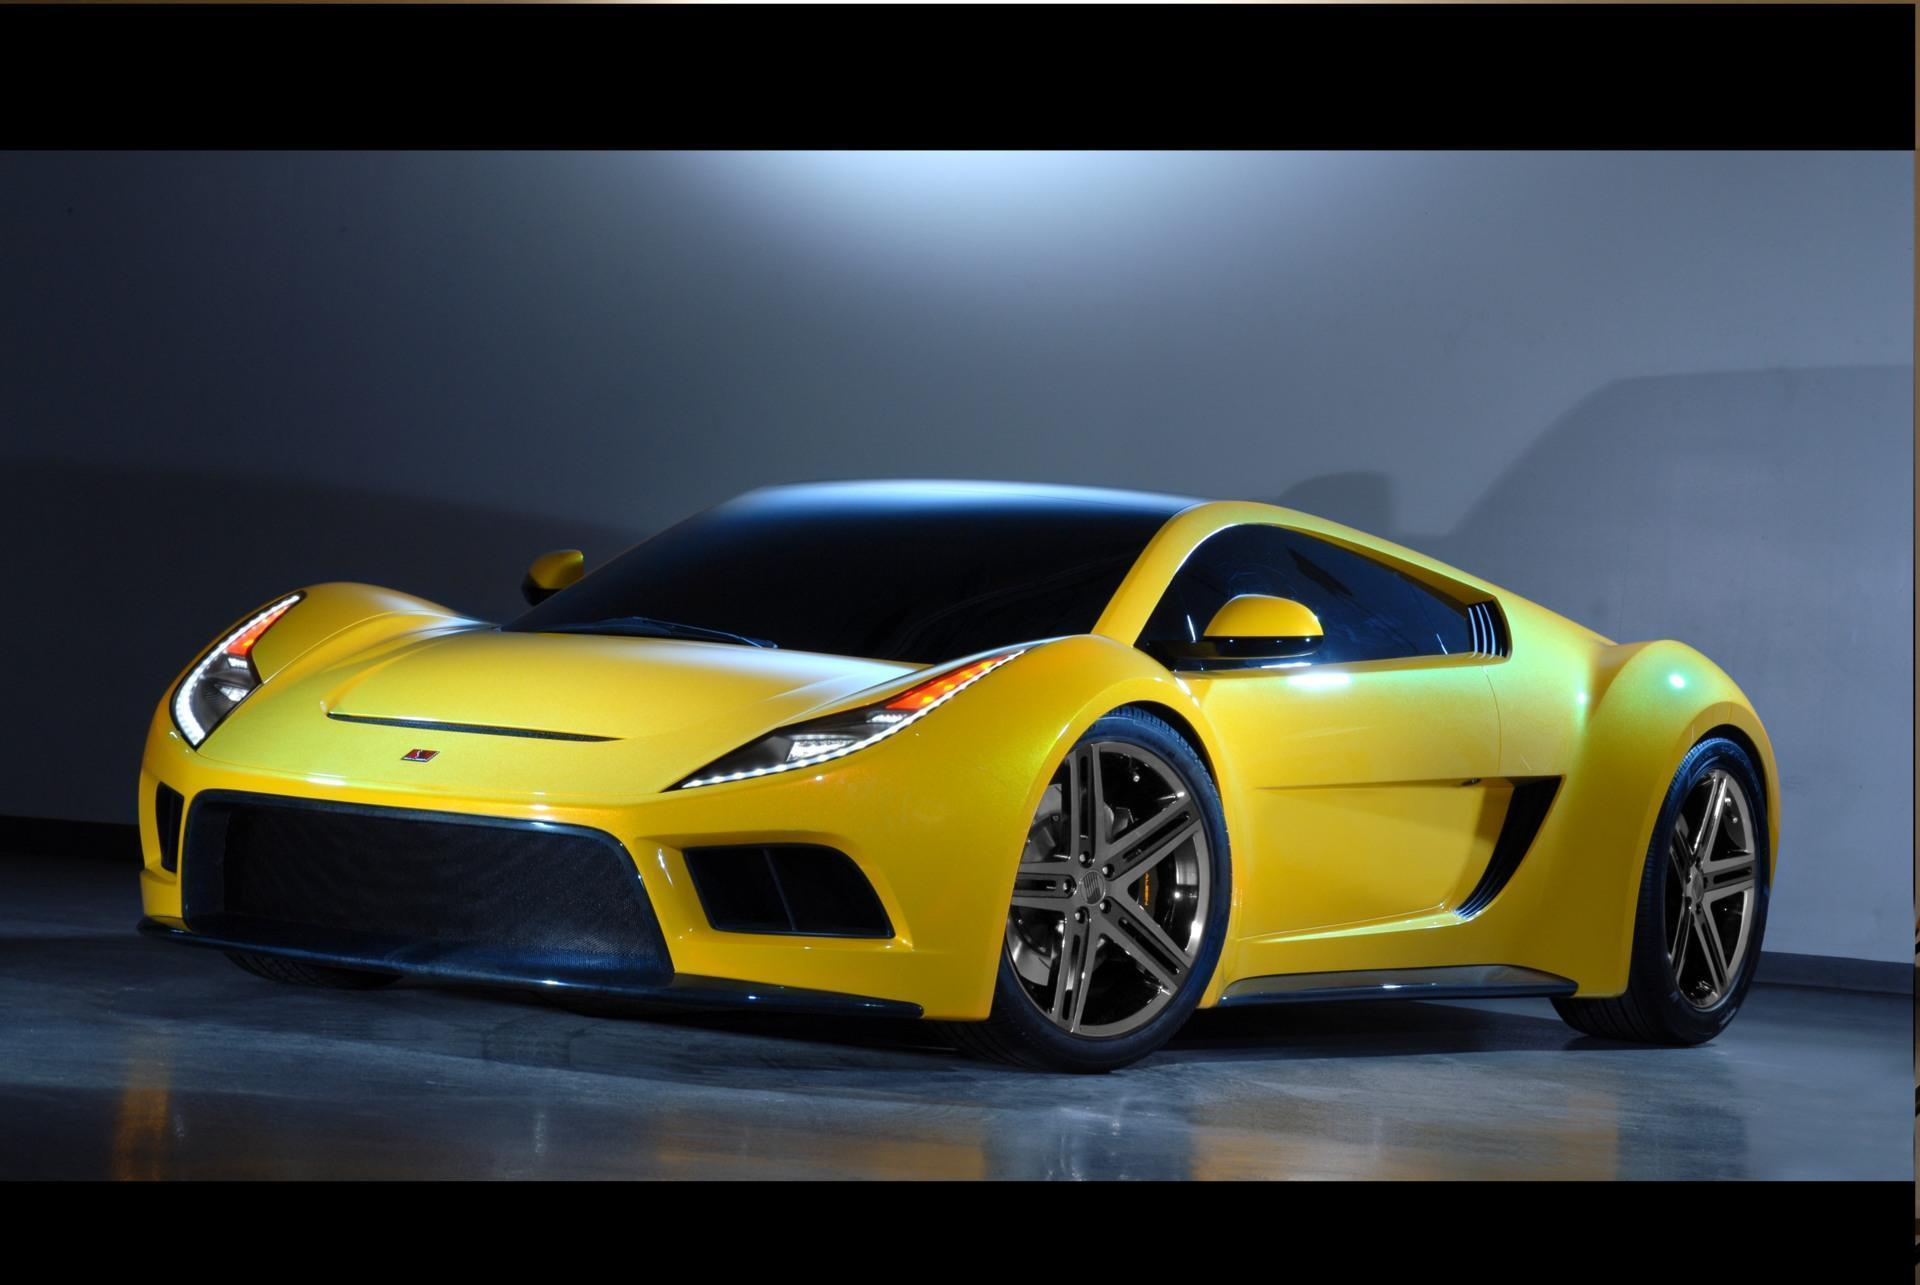 Supercar wallpaper | Wallpapers wide cars